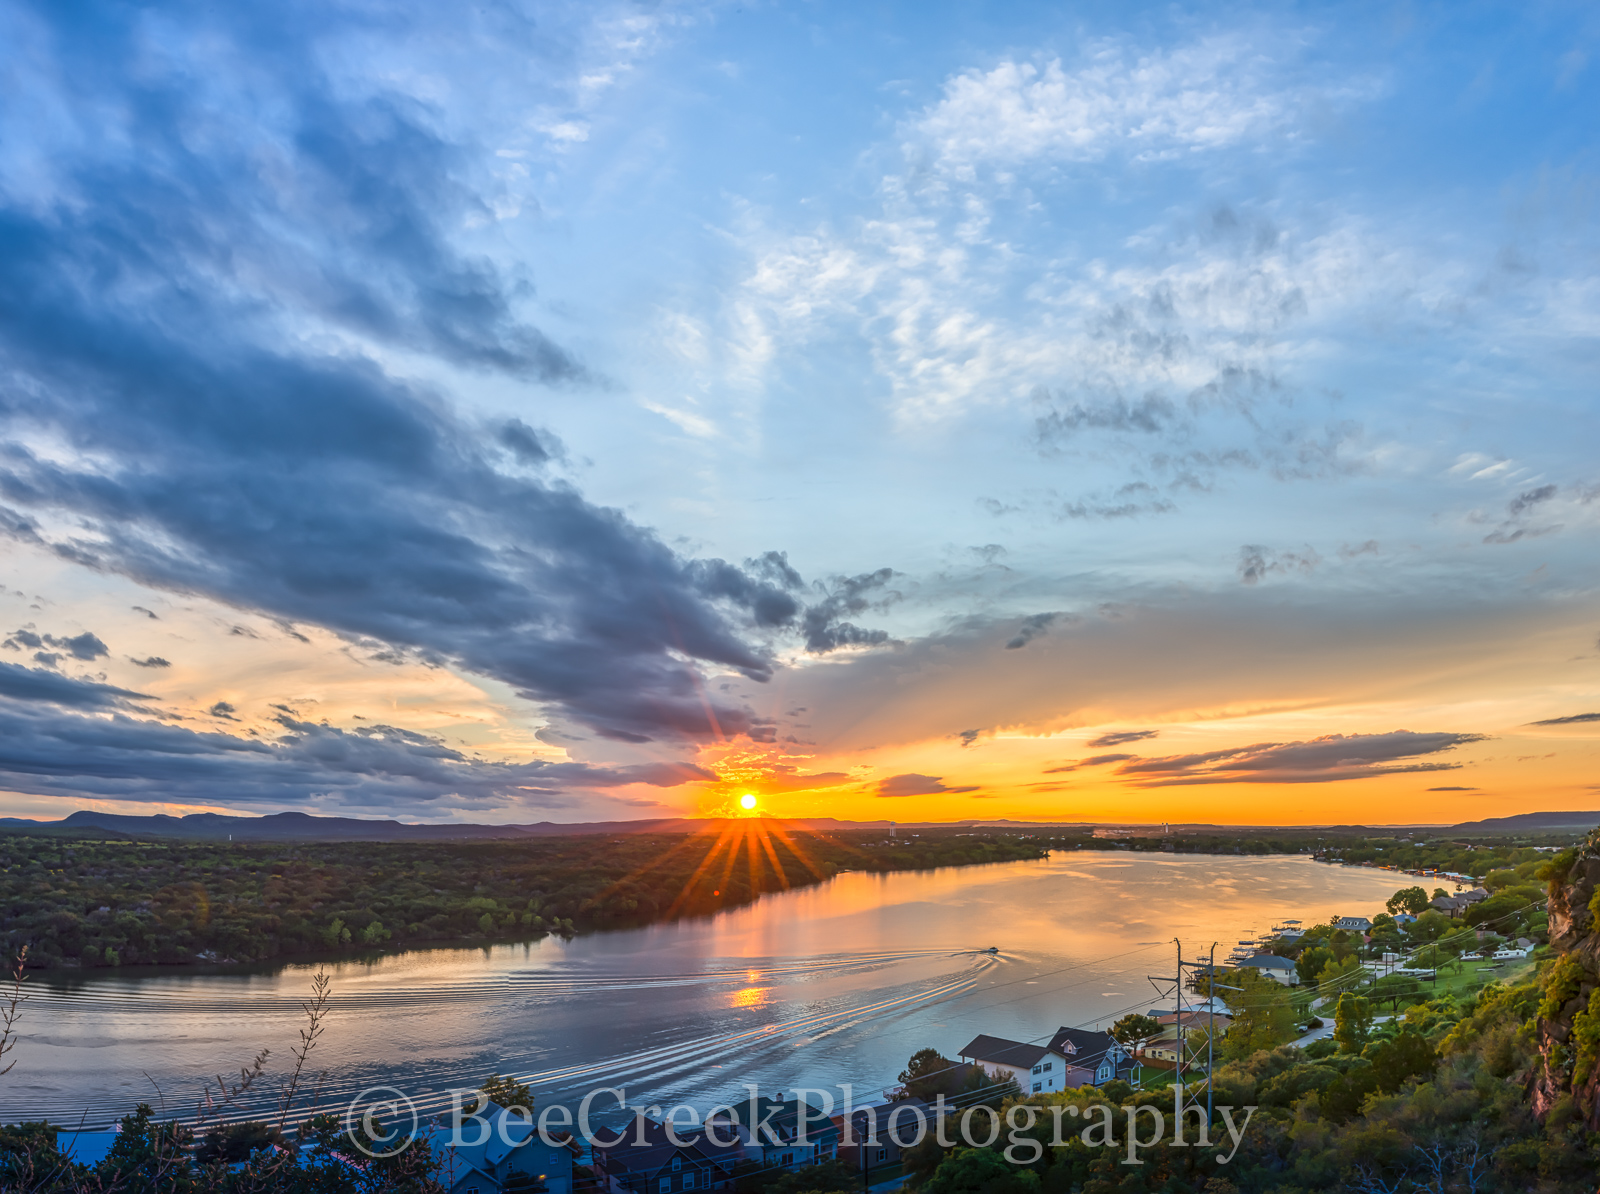 Hill Country, River, boat, boat trail, clouds, colorado river, colorful, dusk, glow, oranges, overlook, pinks, reds, sky, sunset, texas, trees, highland lakes, texas hill country, , photo